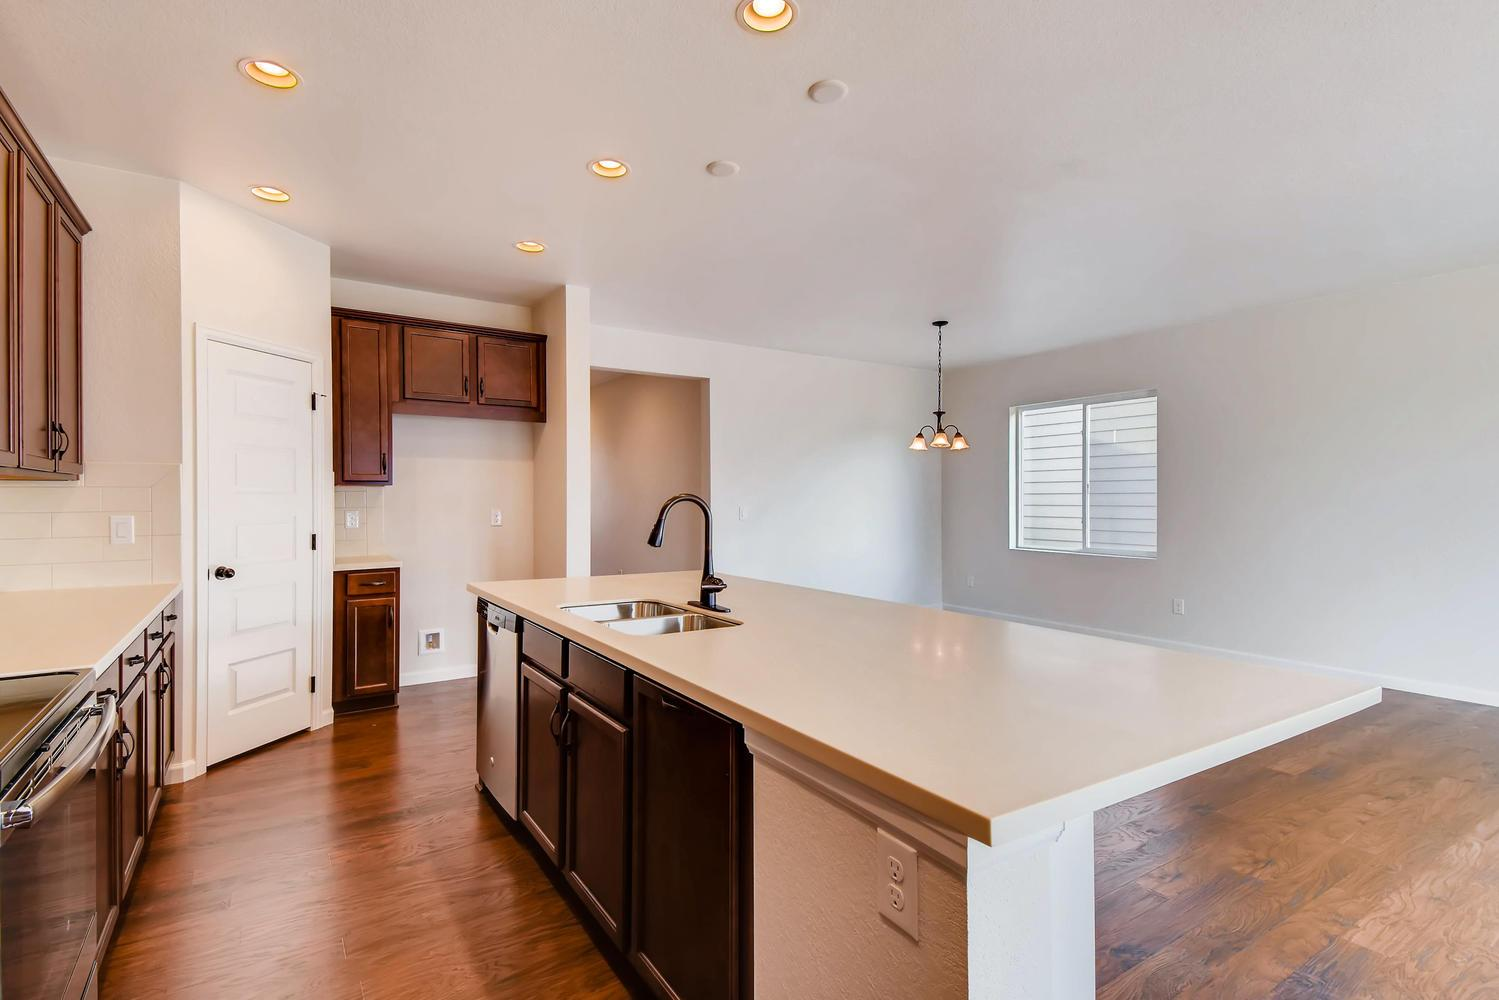 Kitchen-in-Crestone-at-Hearthstone Town Collection-in-Broomfield